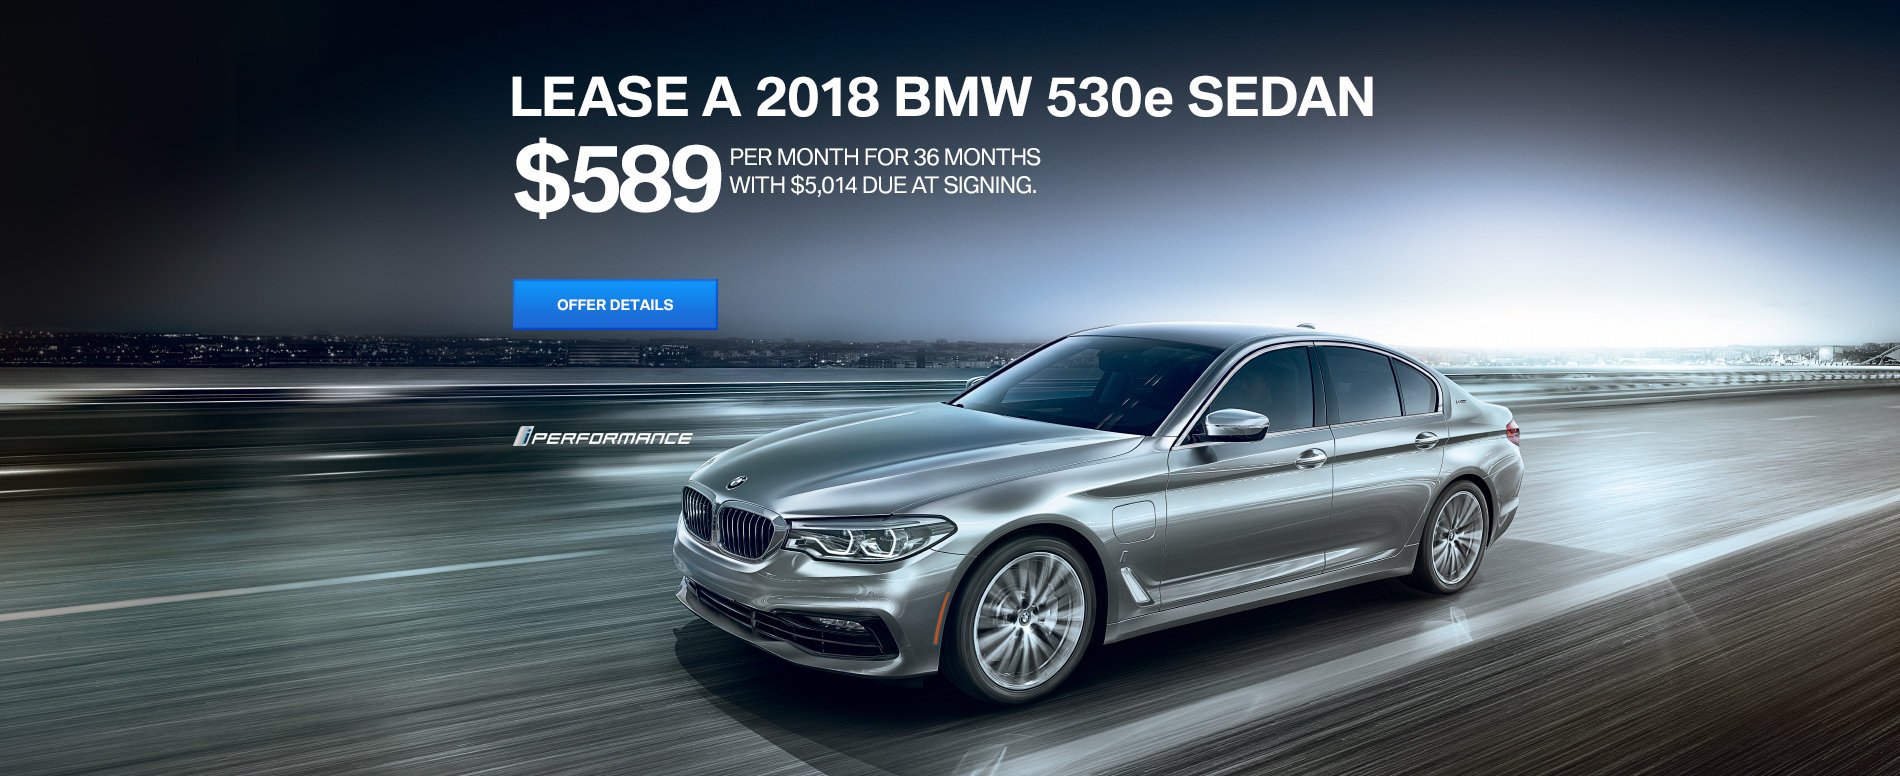 LEASE A 2018 BMW 530e iPERFORMANCE FOR $589 PER MONTH FOR 36 MO